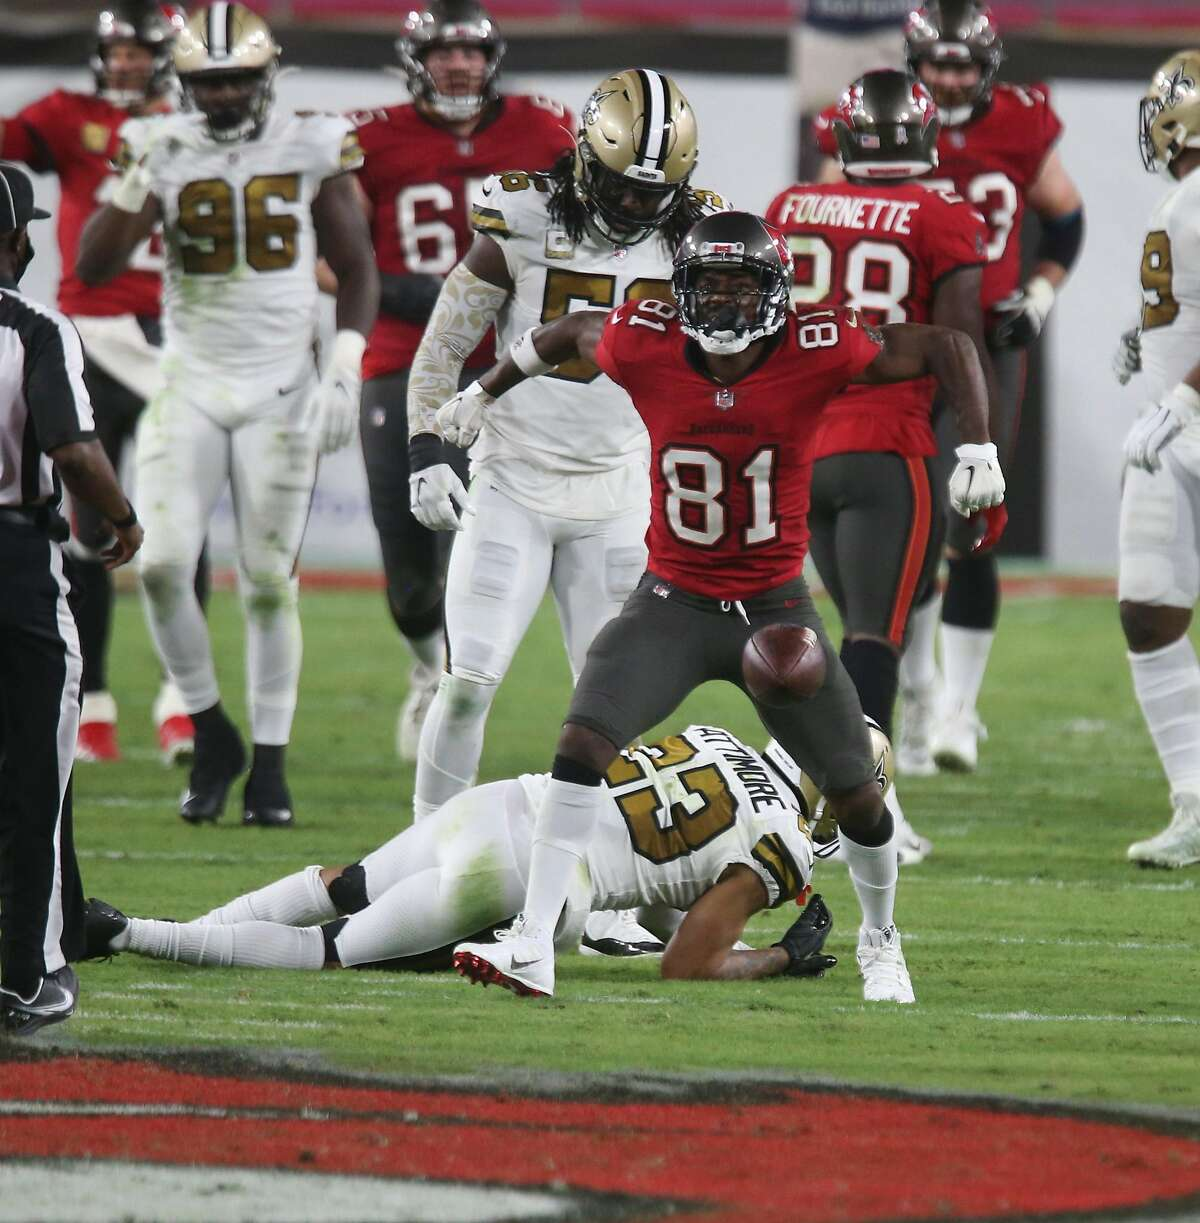 Tampa Bay Buccaneers wide receiver Antonio Brown (81) celebrates a reception in the third quarter against the New Orleans Saints on Sunday, Nov. 8, 2020 at Raymond James Stadium in Tampa, Florida. (Doug Clifford/Tampa Bay Times/TNS)